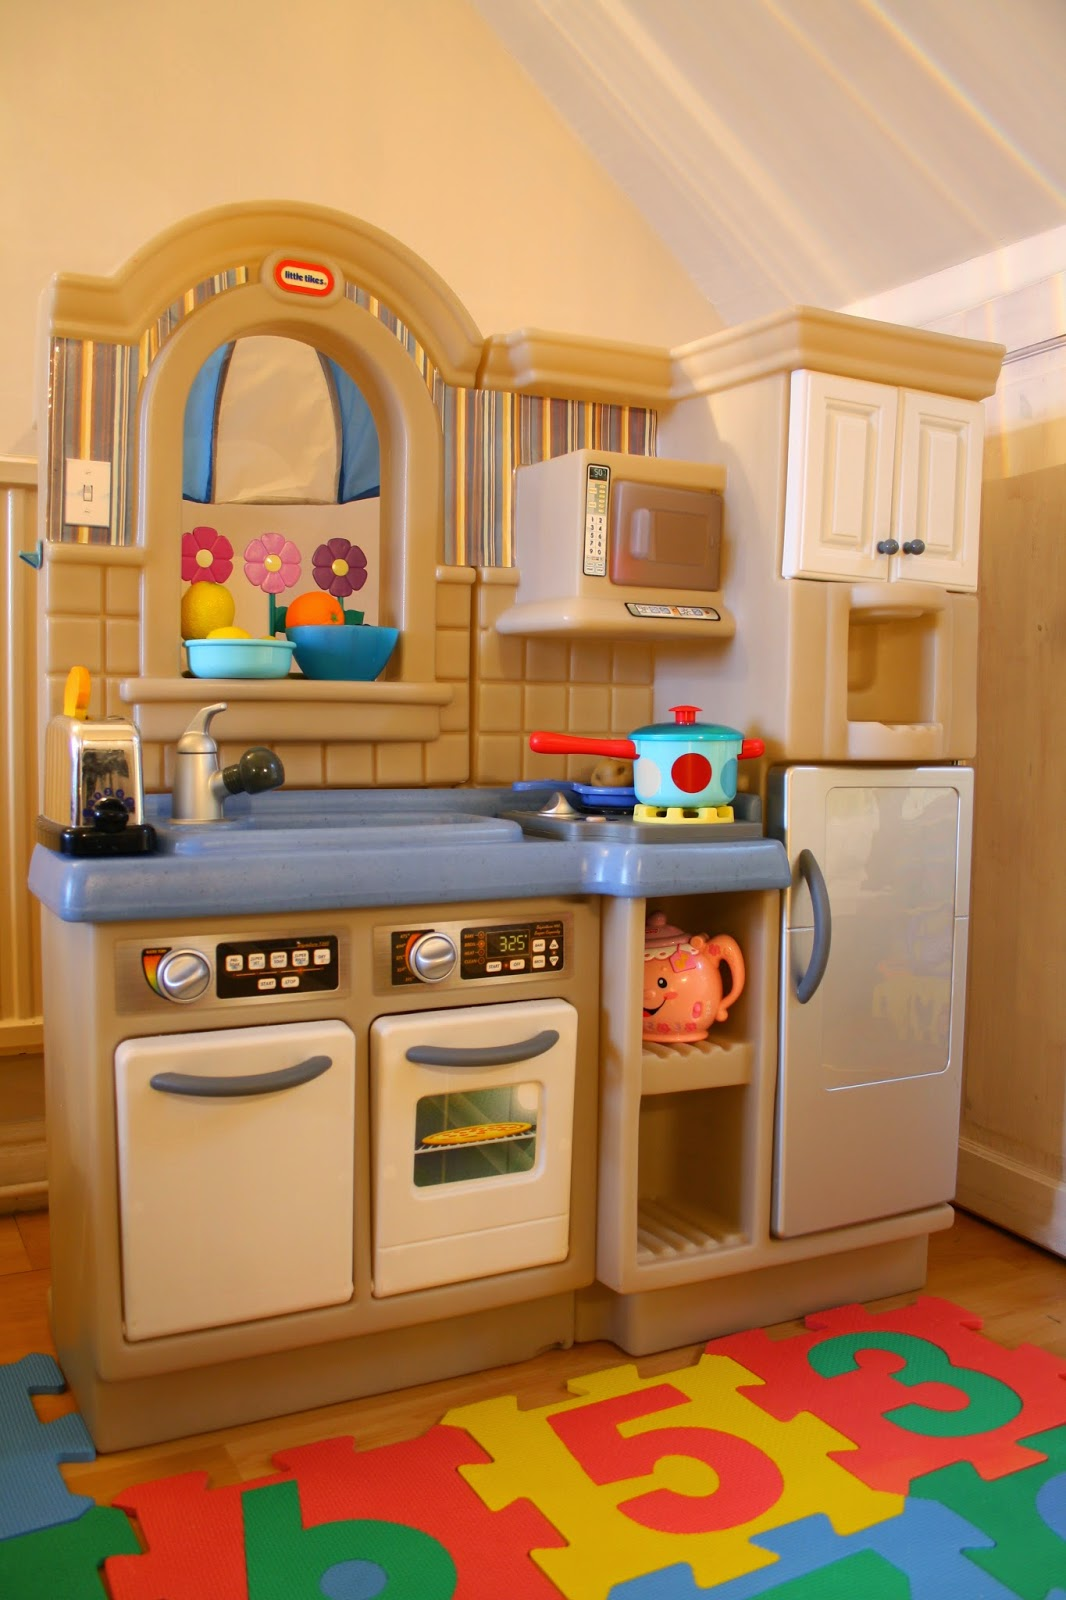 Little Tikes Play Kitchen With Grill our bargain buy: little tikes inside/outside cook 'n grill play